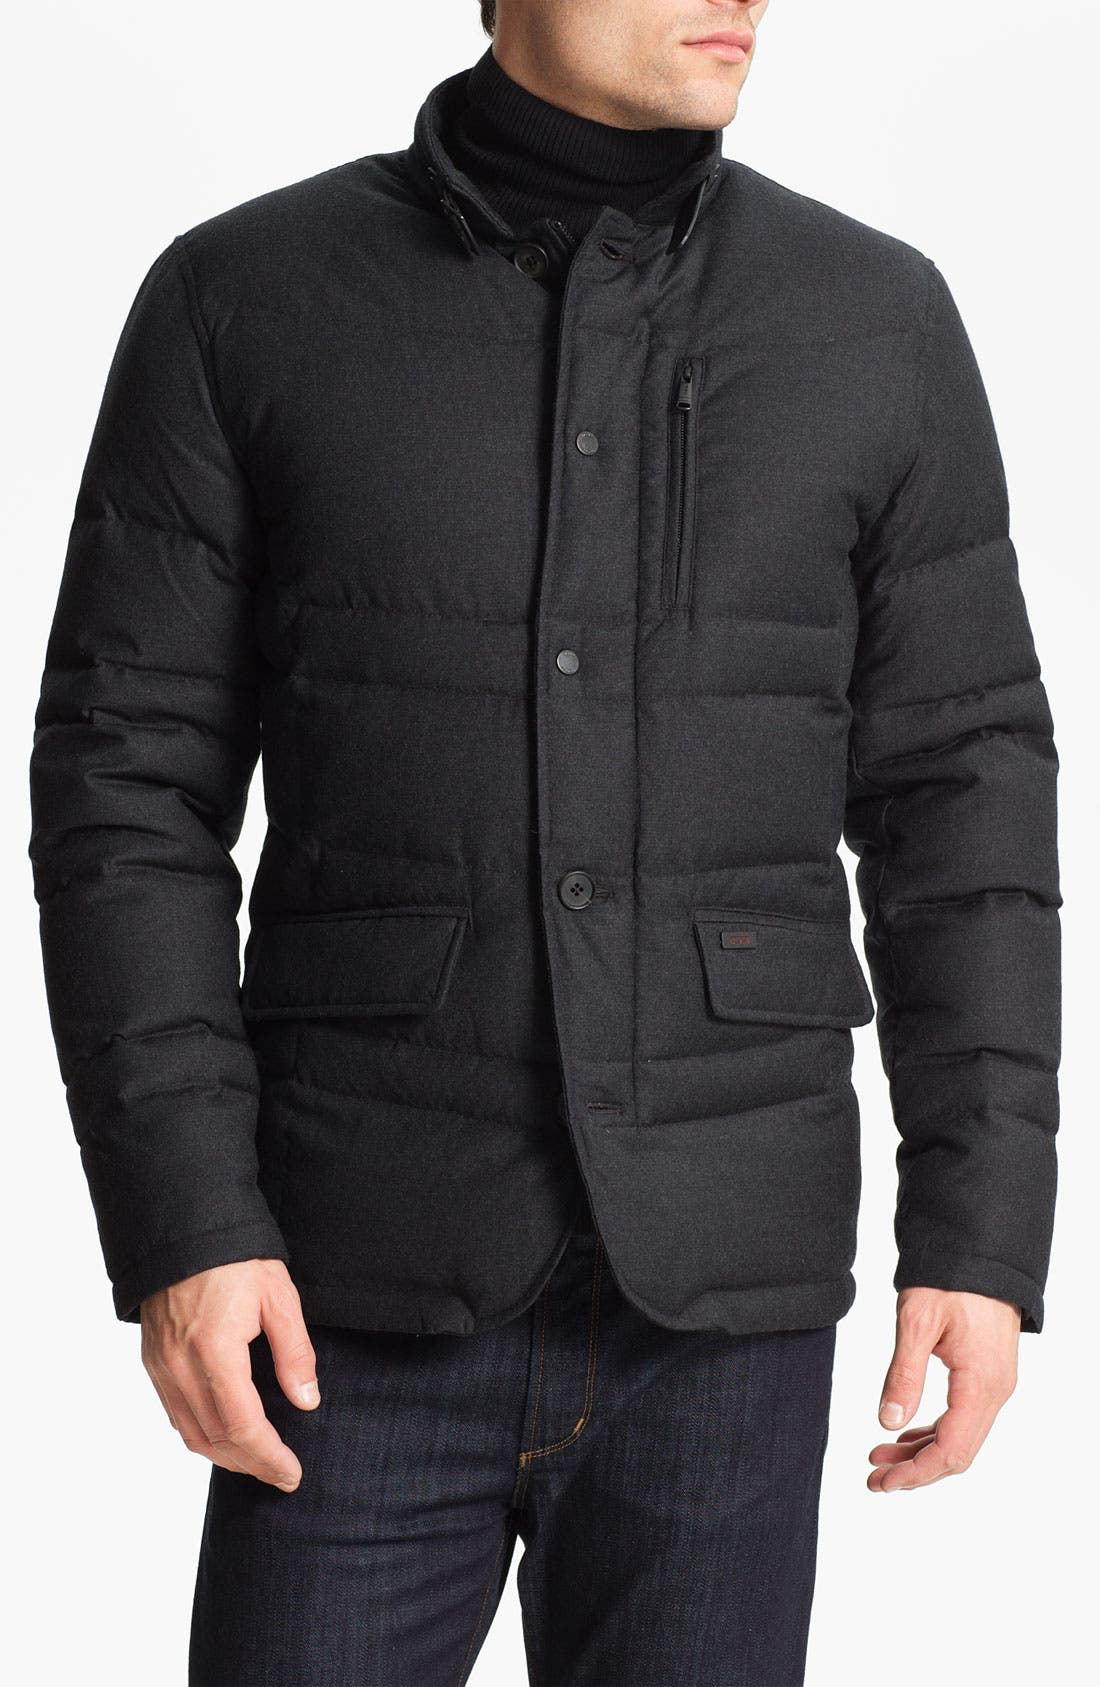 Main Image - Tumi Wool & Cashmere Puffer Jacket with Down Fill